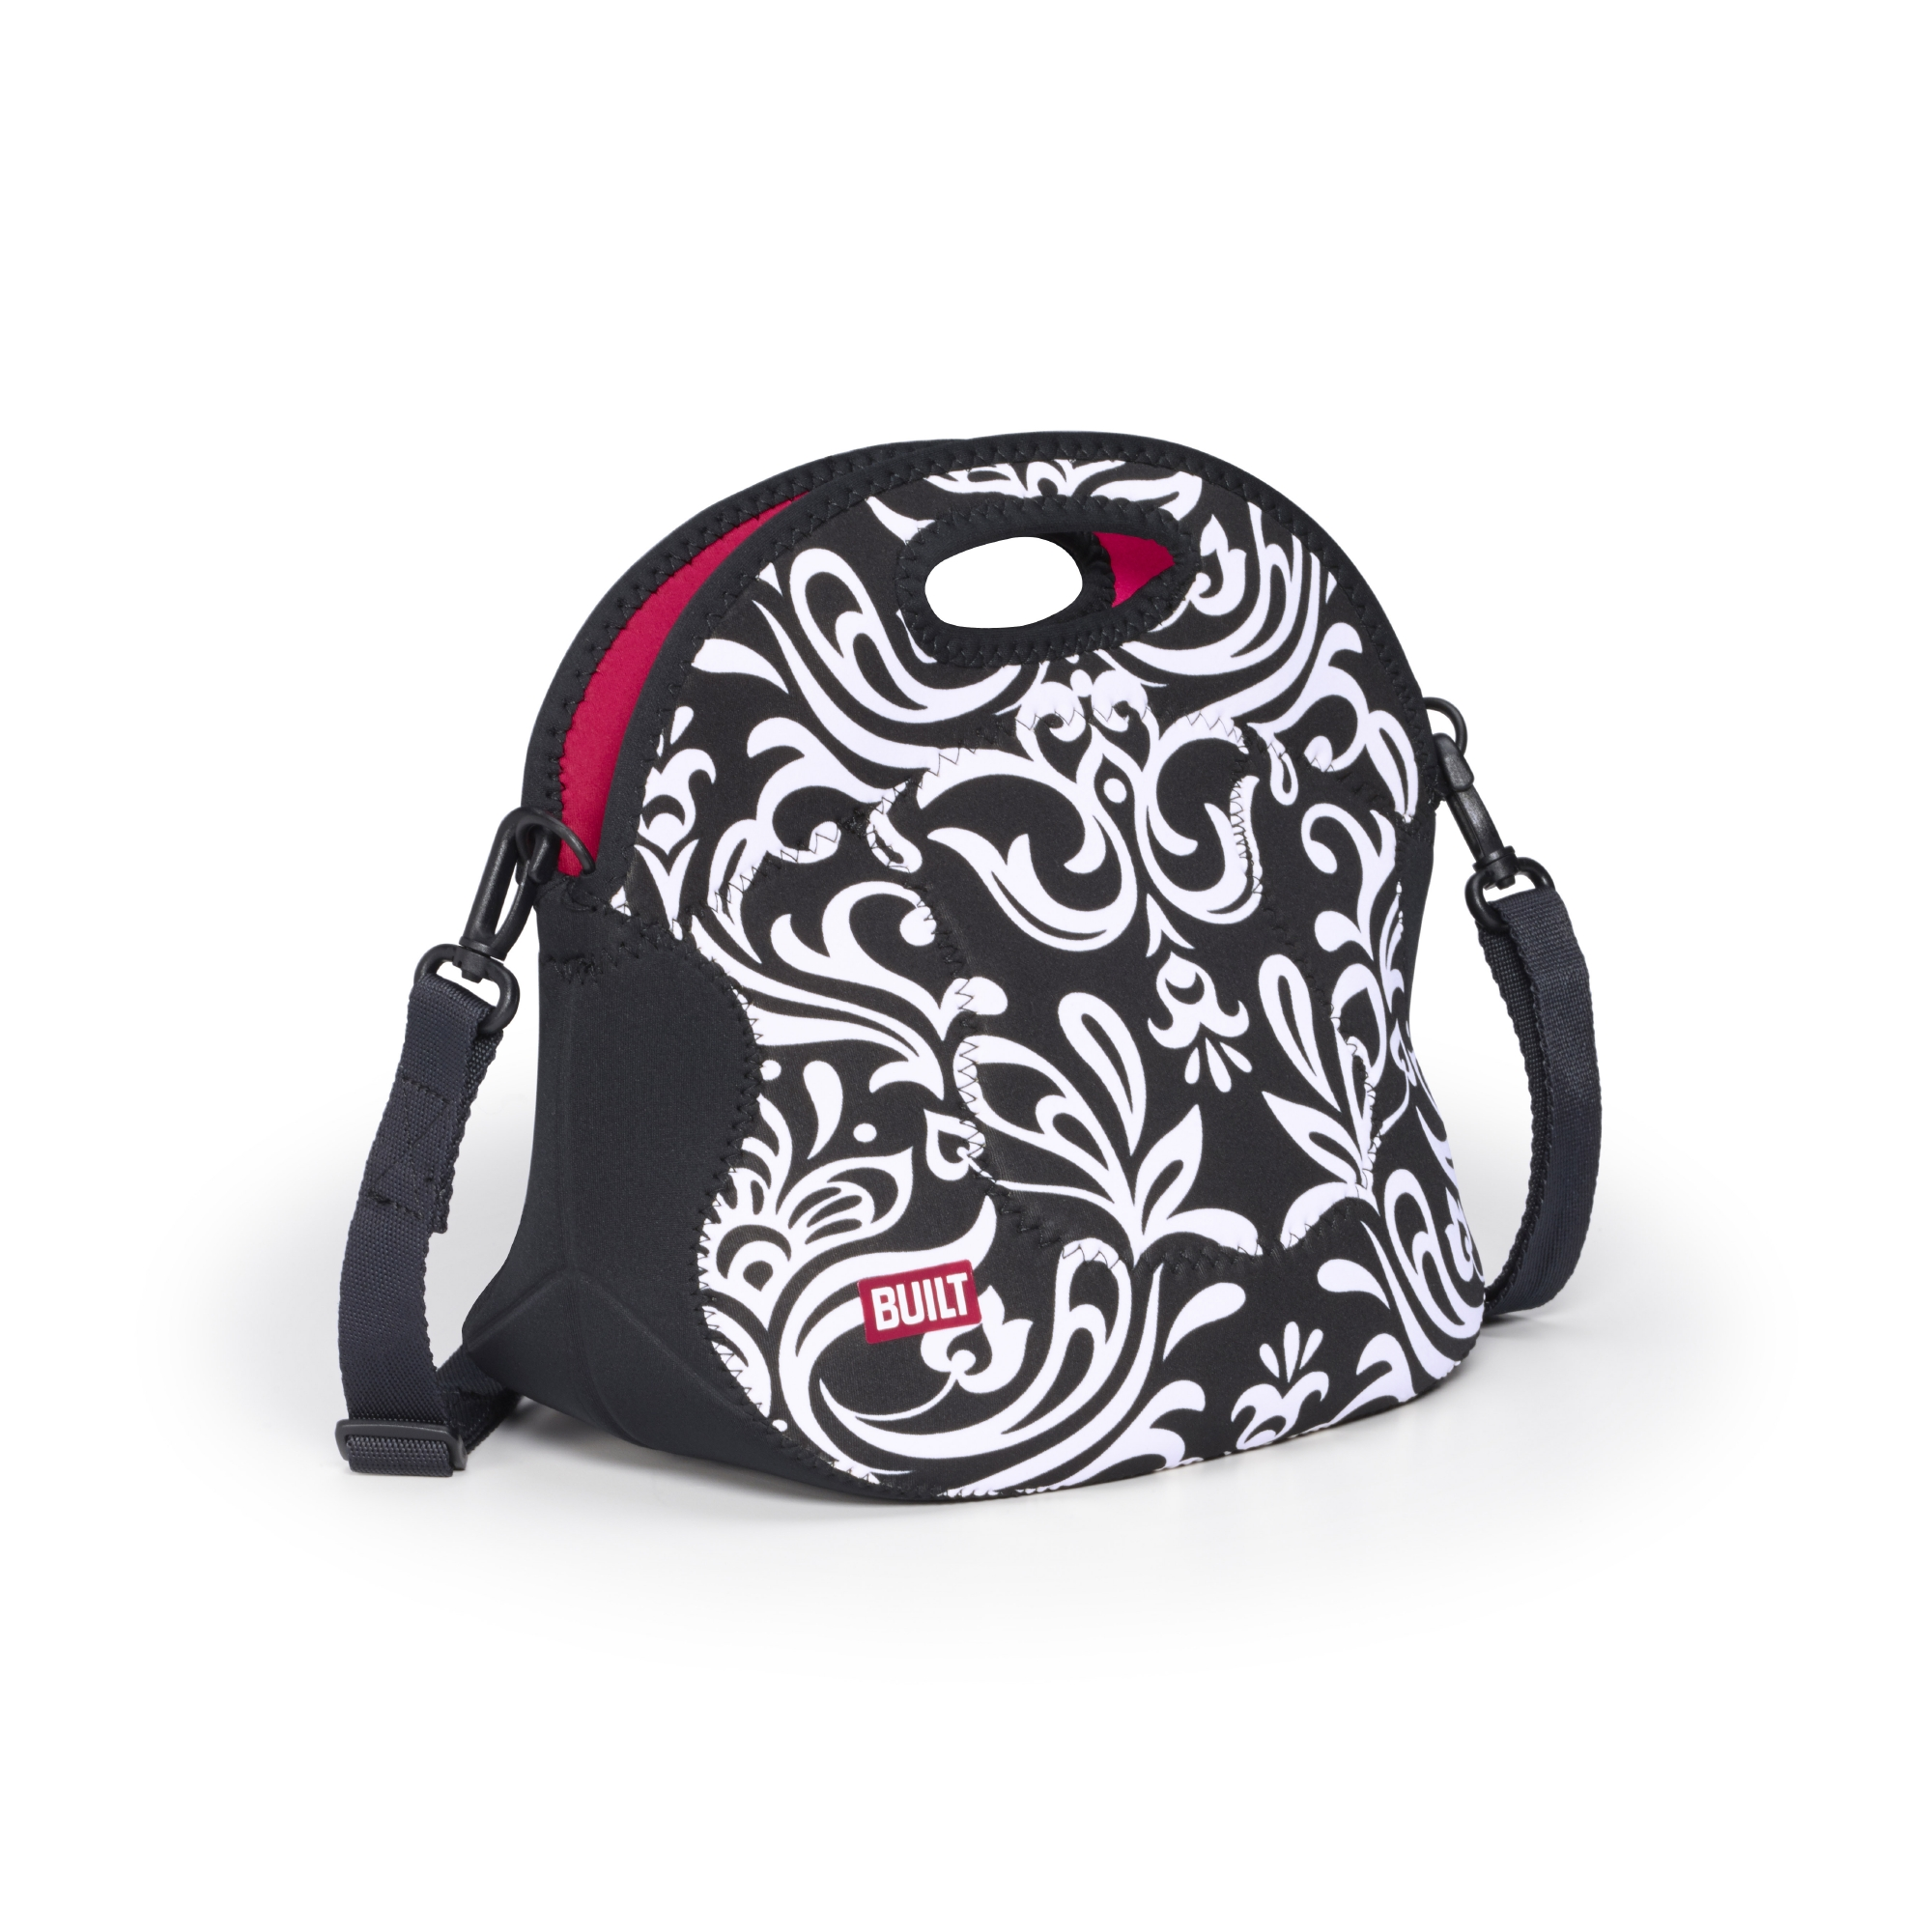 Lifetime Brands BUILT NY Black and White Damask Spicy Relish Lunch Tote